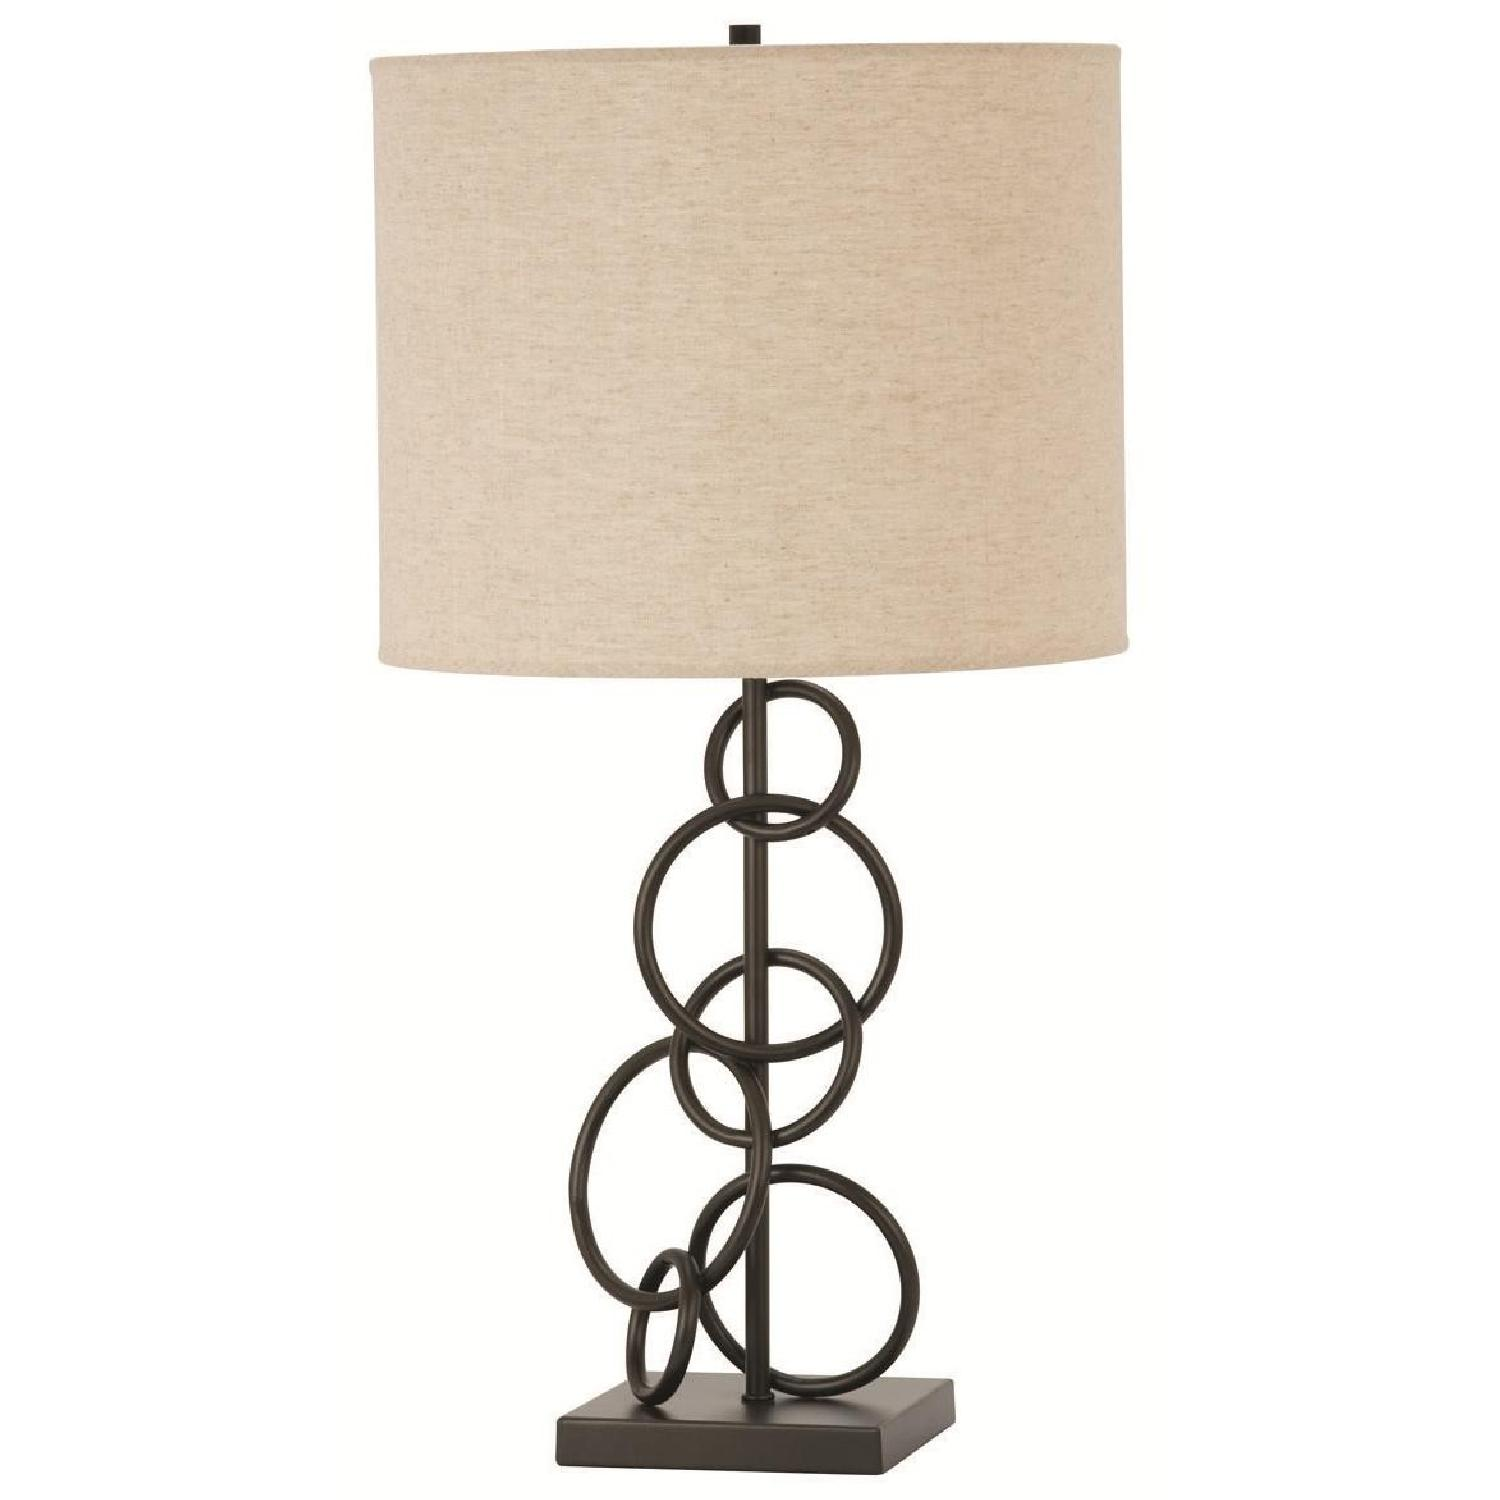 Table Lamp w/ Beige Linen Drum Shade & Interlocking Rings Design Vintage Bronze Finish Base